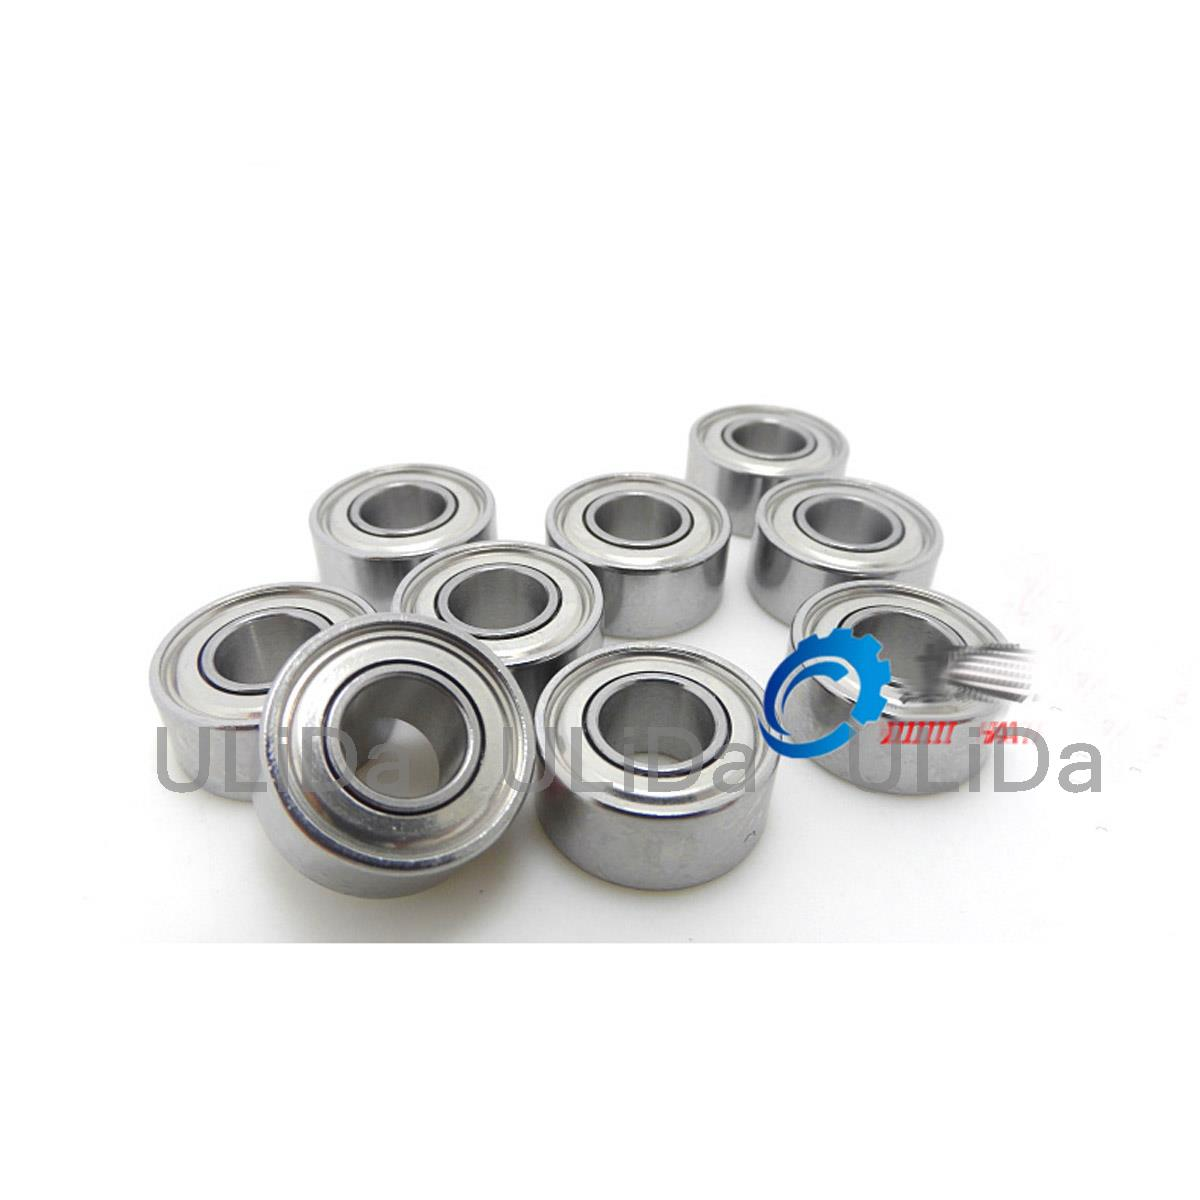 5pcs 685ZZ 685Z 685 2Z 5x11x5mm Deep Groove Ball Bearing Mini Bearing 5*11*5